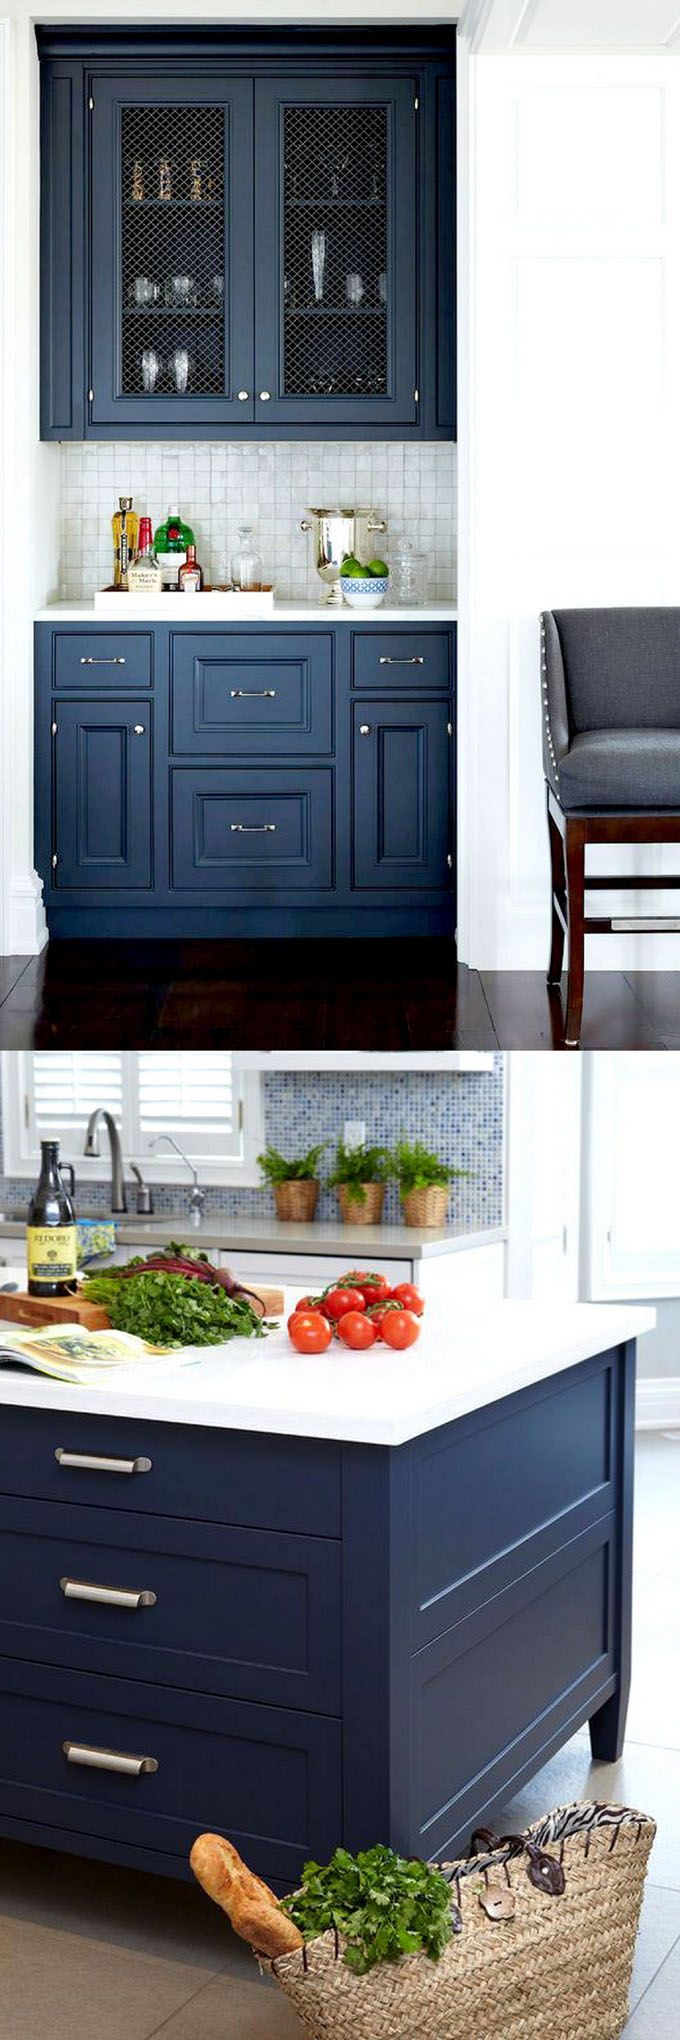 Best 25+ Kitchen cabinets ideas on Pinterest